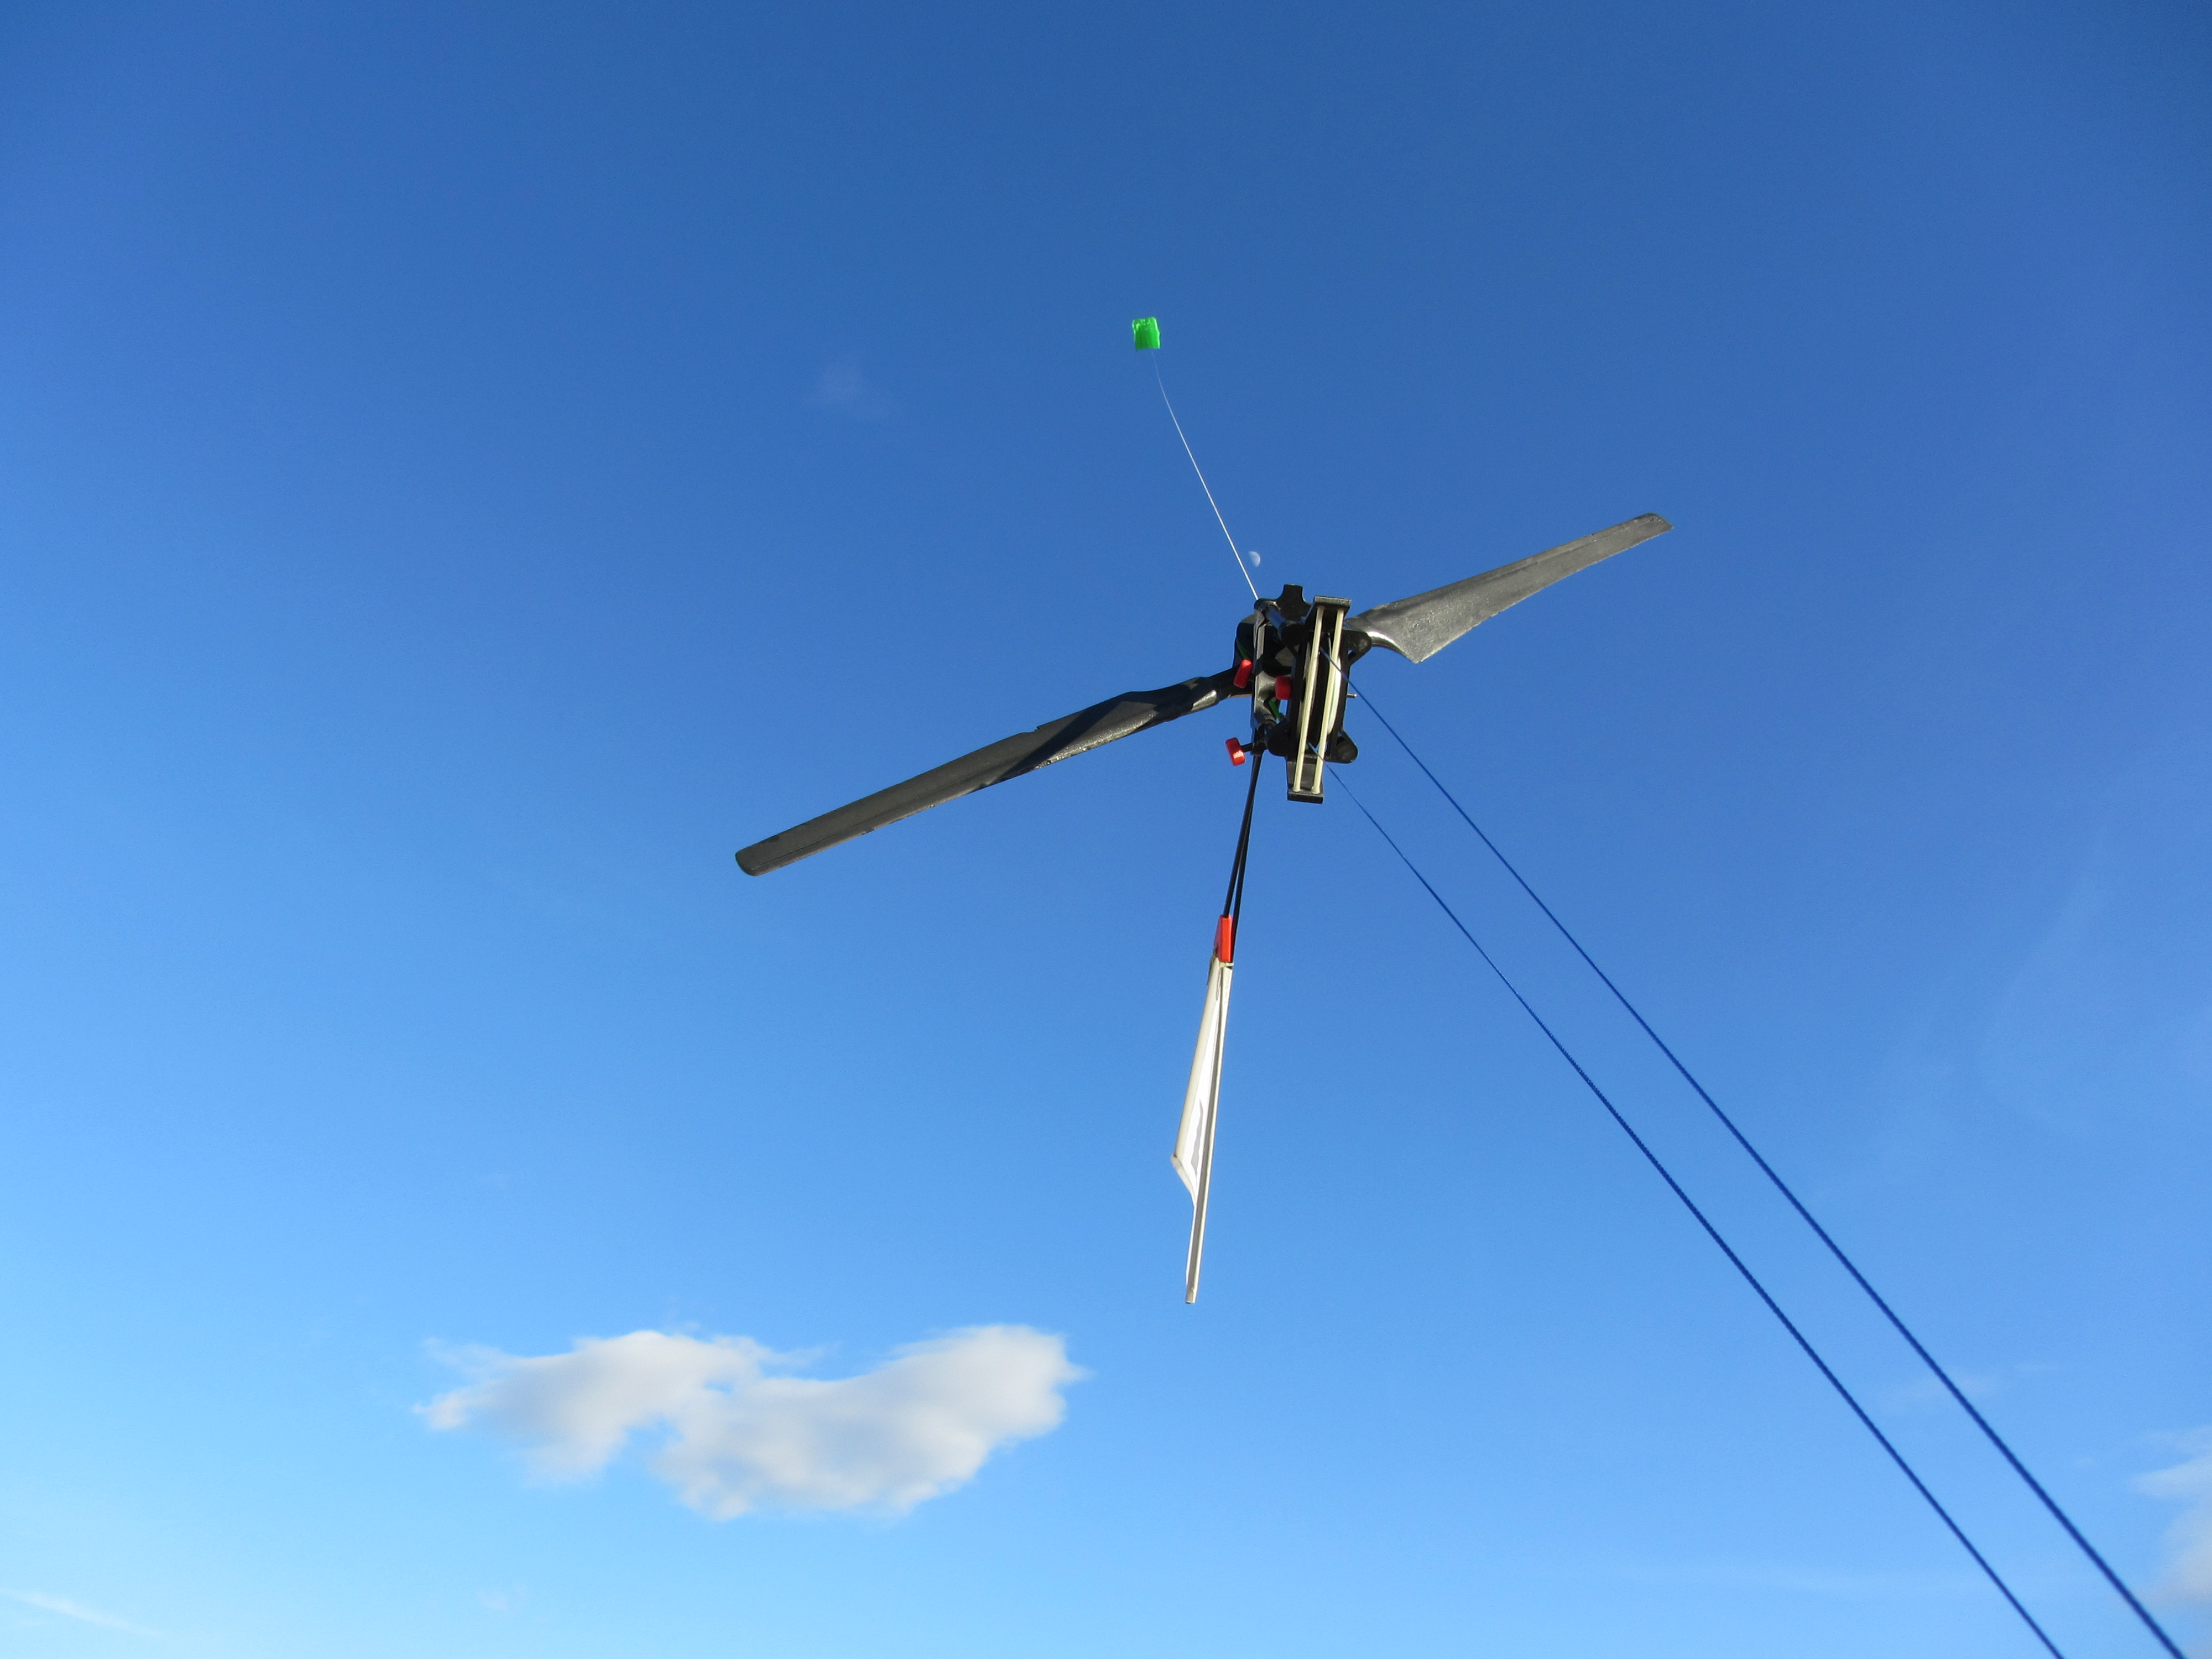 Airborne wind turbine - Wikipedia